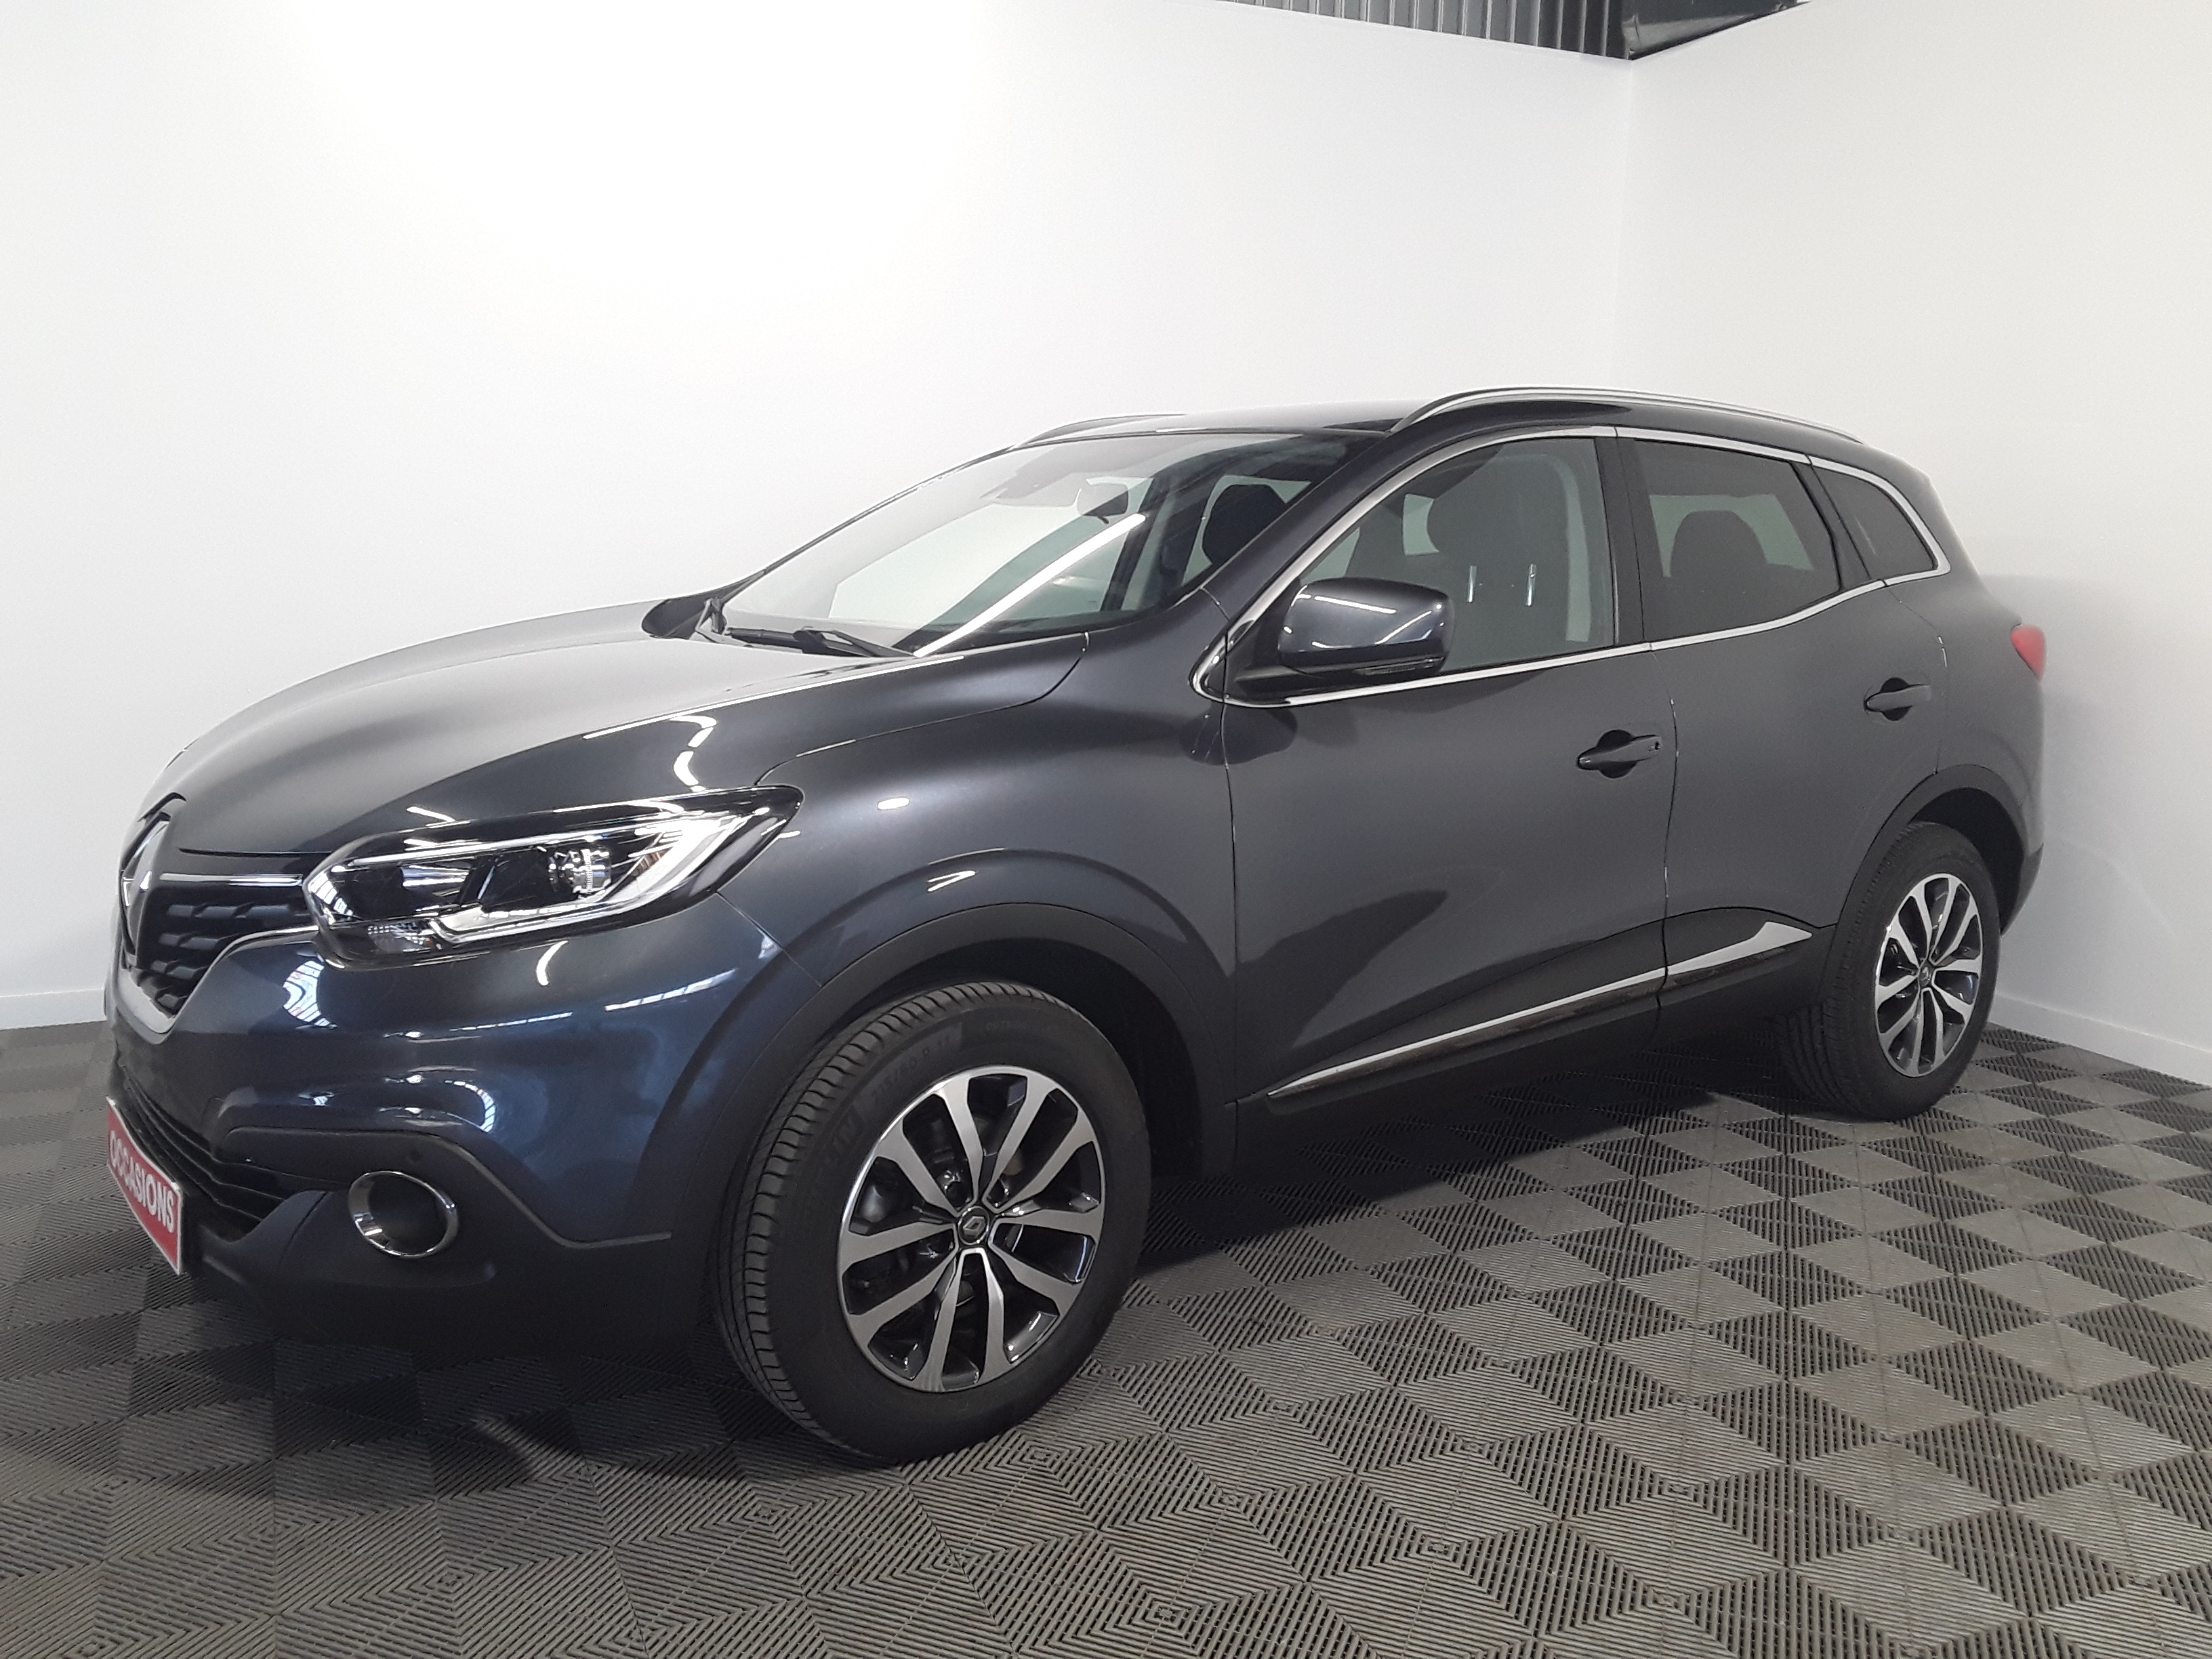 RENAULT KADJAR BUSINESS 2018 - Photo n°1